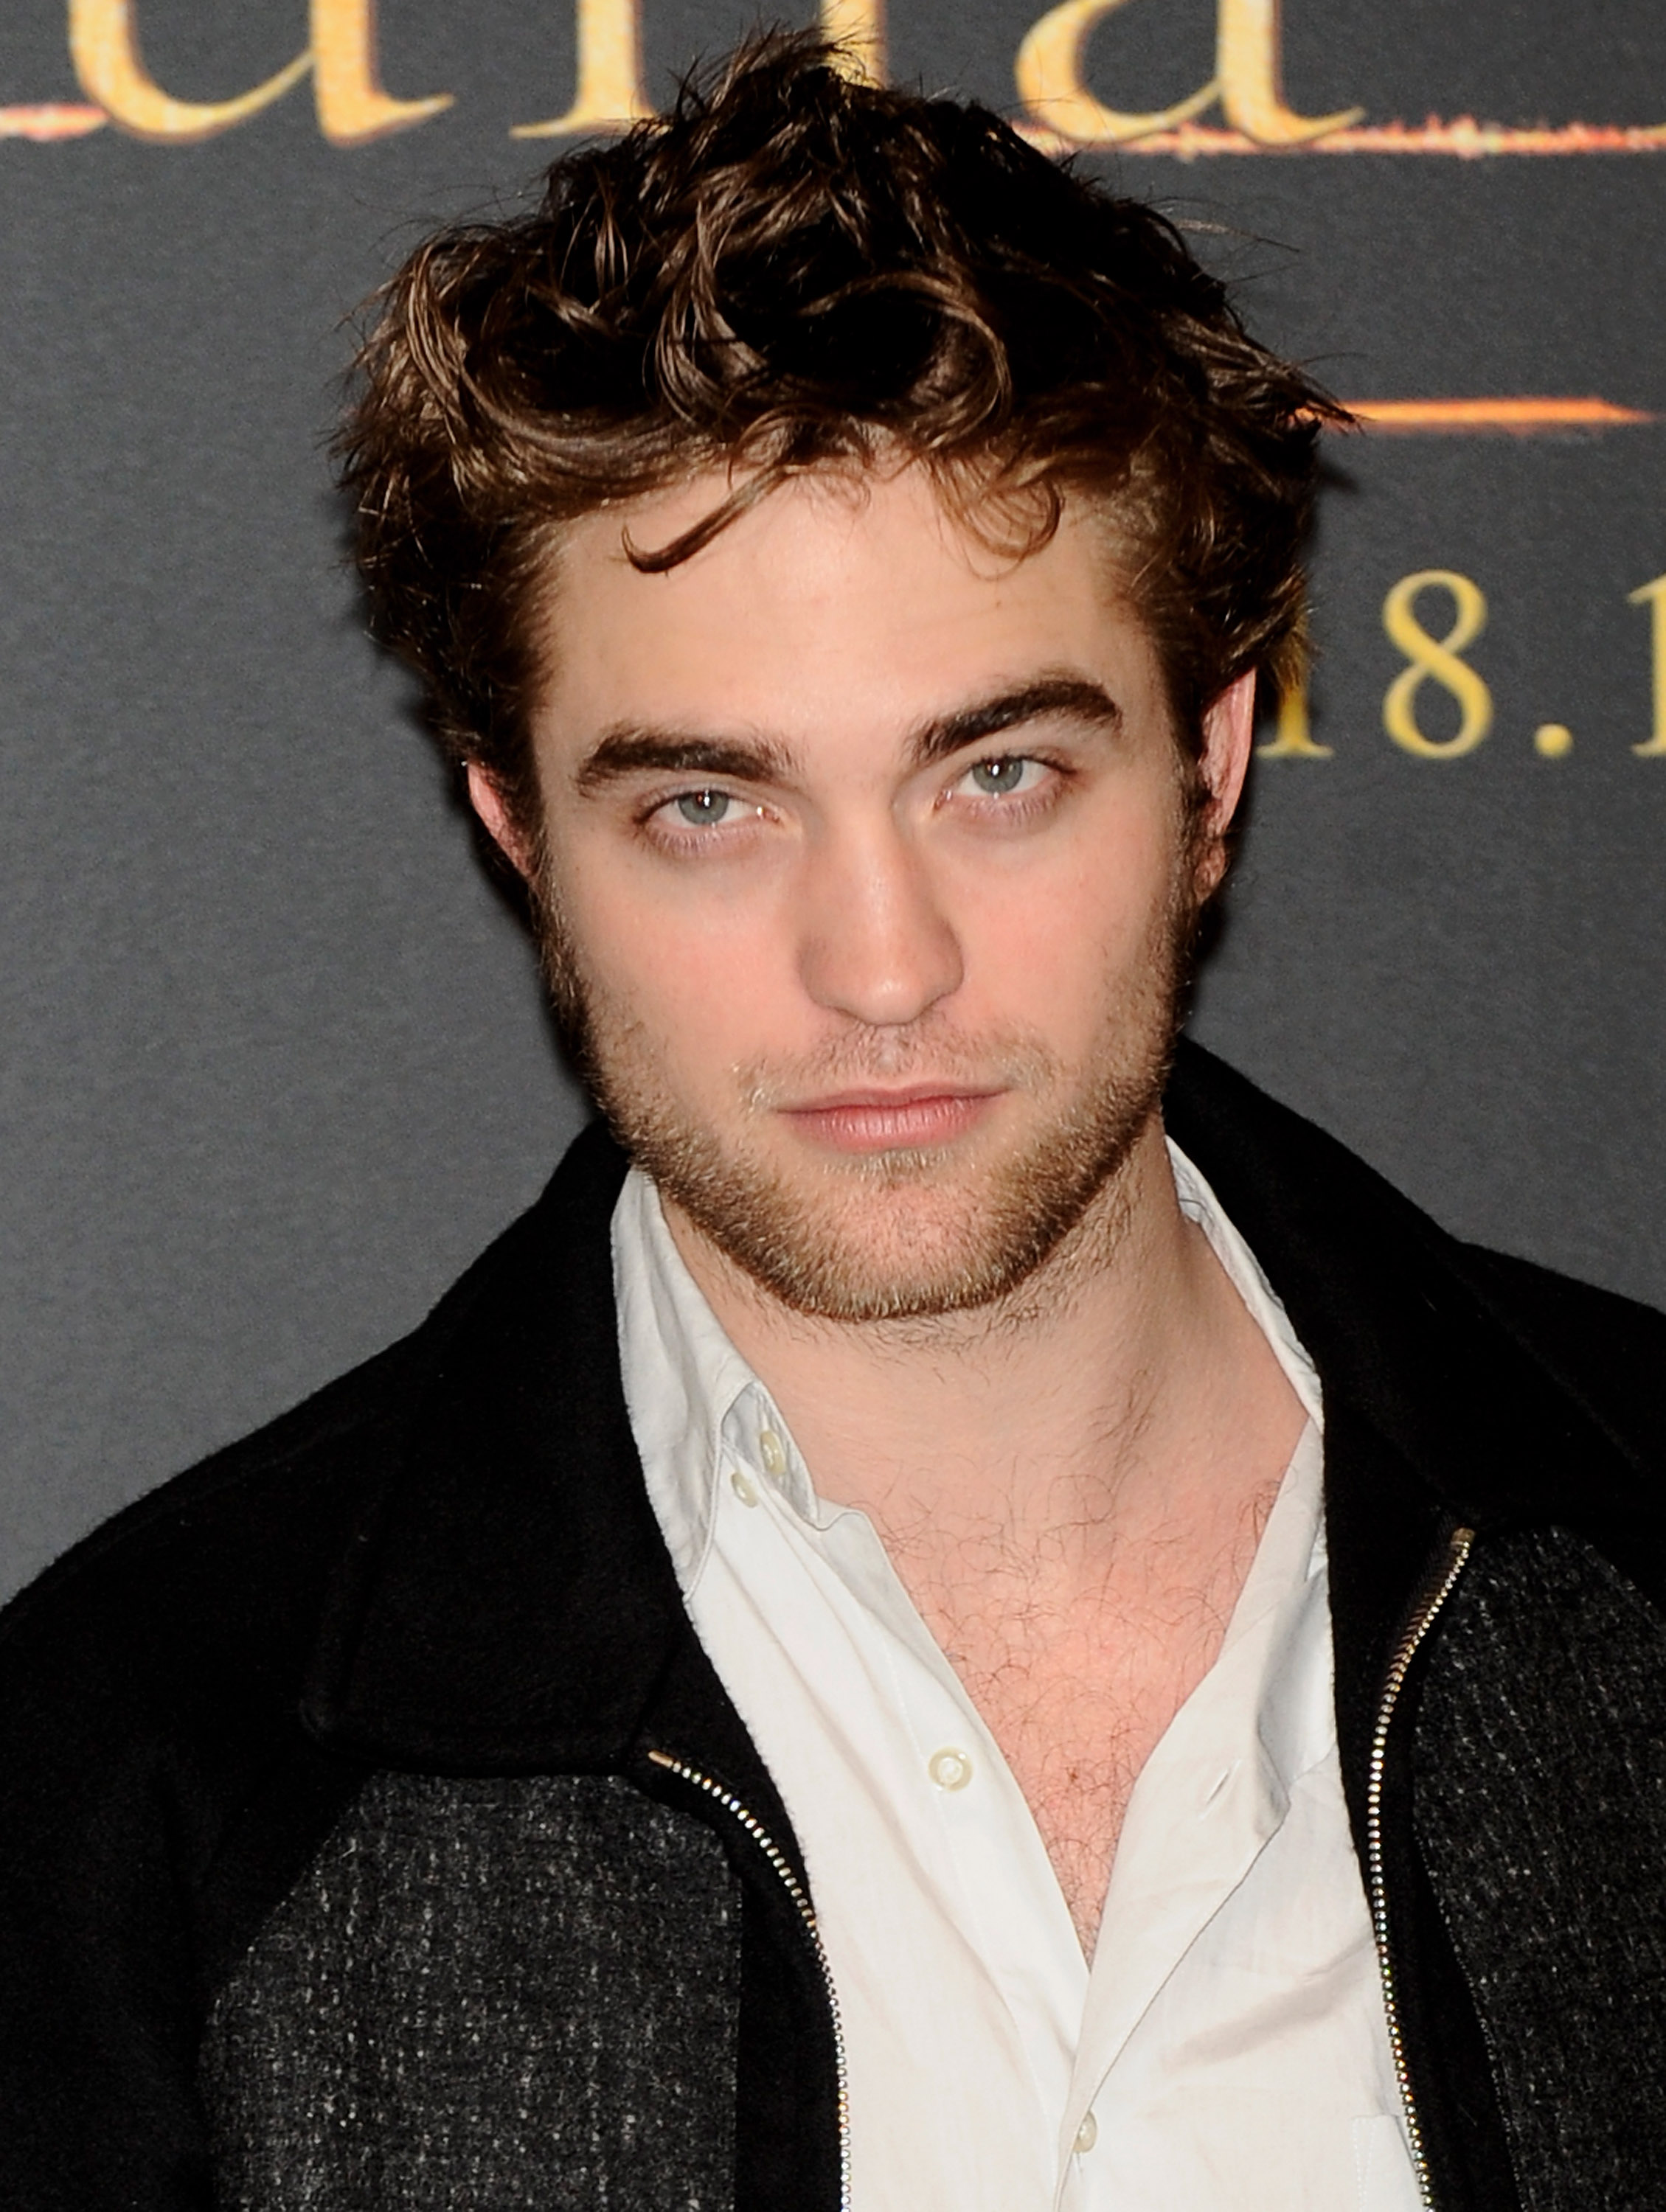 29 Robert Pattinson Hairstyles That Indicate Just How Much His Hair